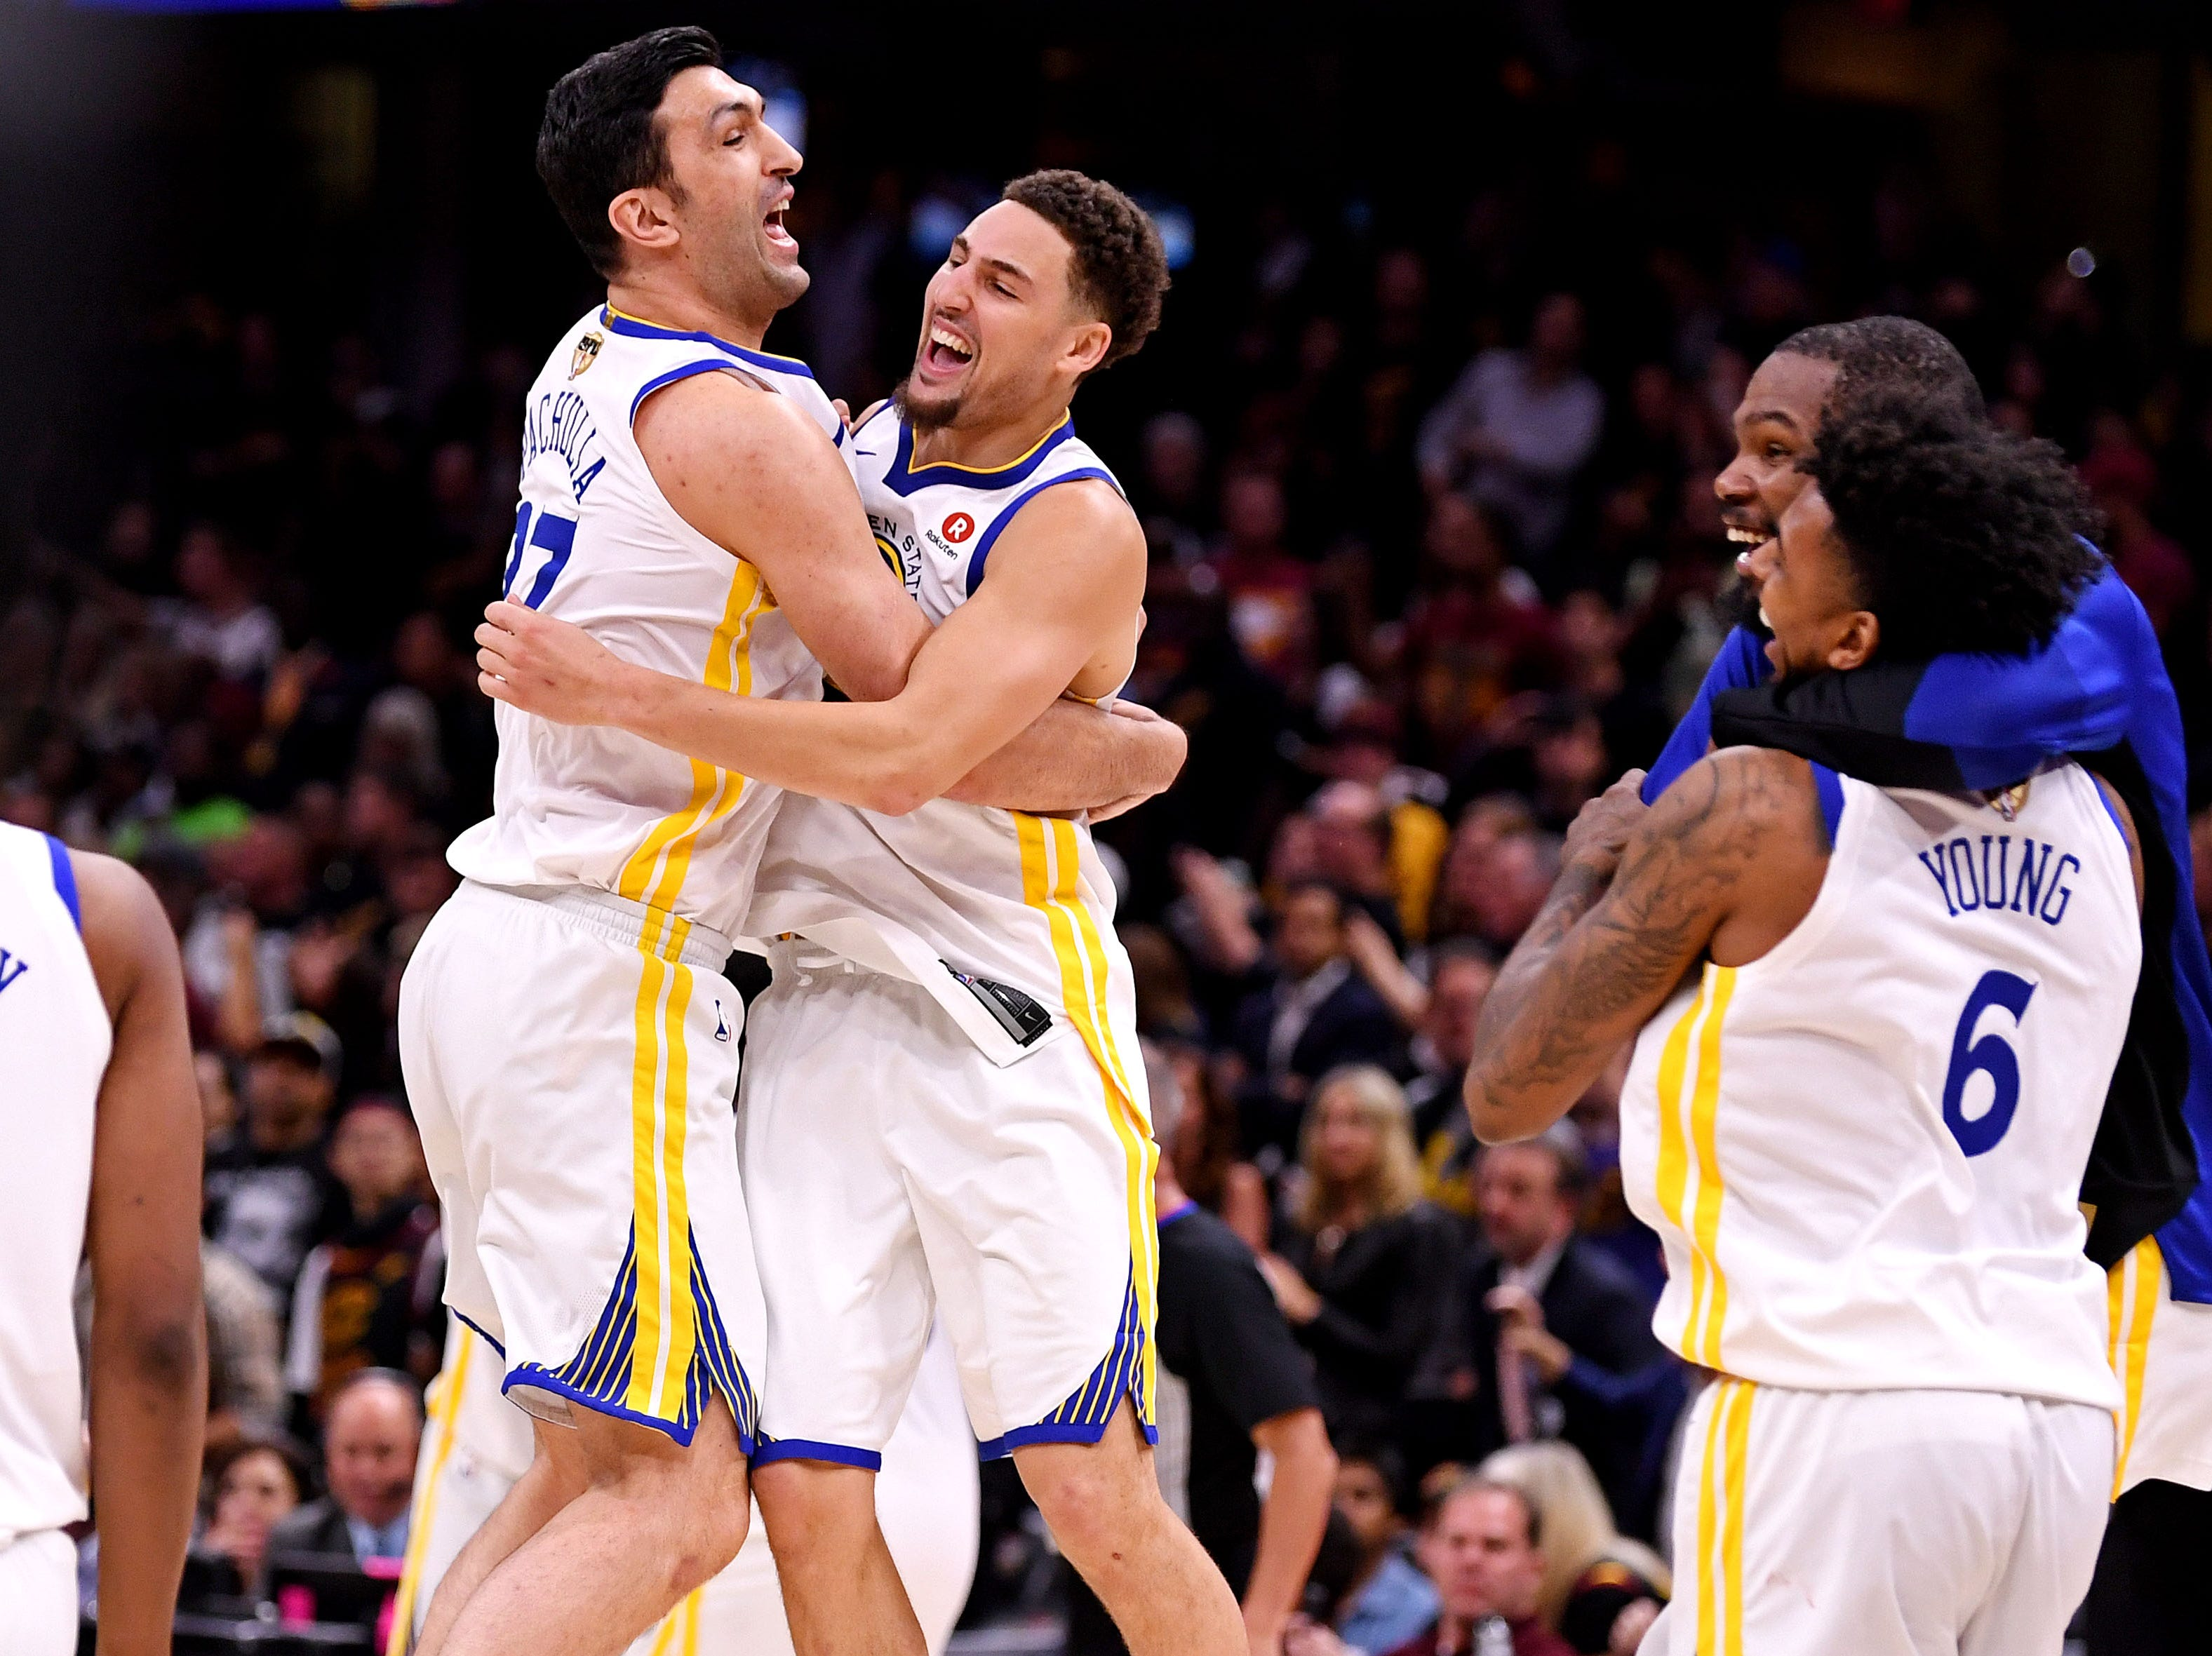 June 8: The Golden State Warriors celebrate after beating the Cleveland Cavaliers in Game 4 of the NBA Finals to clinch the title.